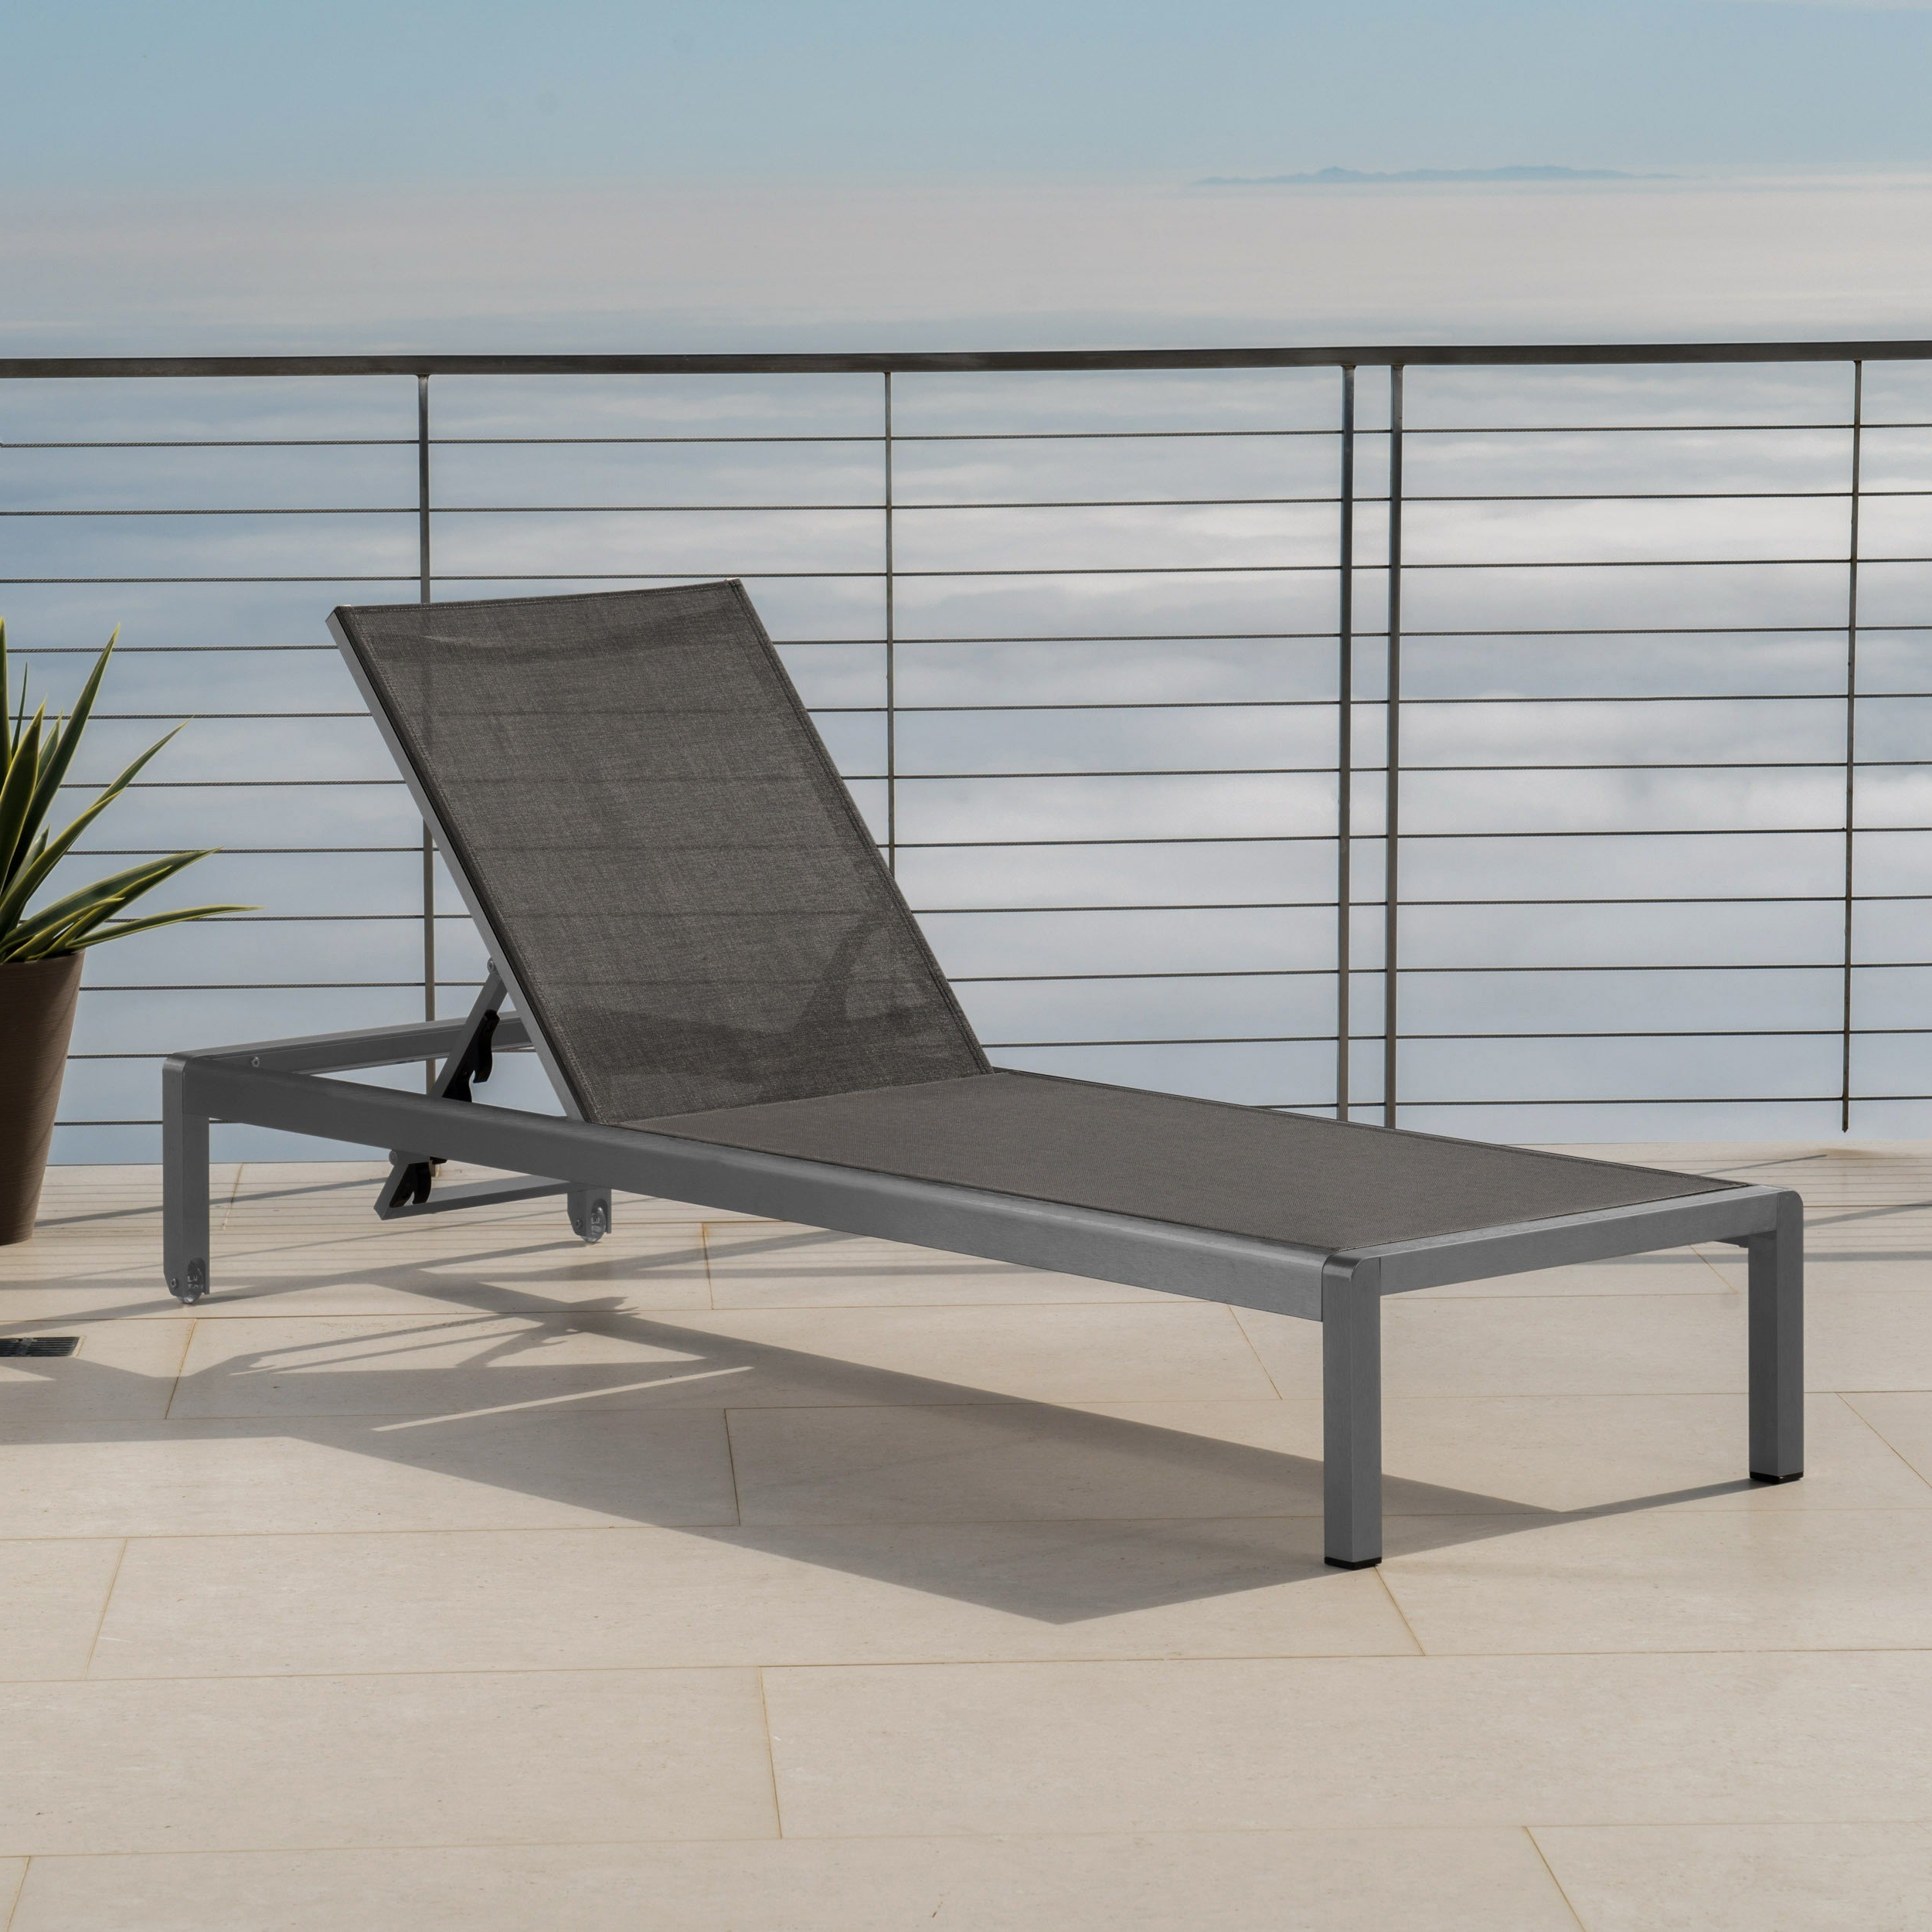 Featured Photo of Cape Coral Outdoor Aluminum Chaise Lounges